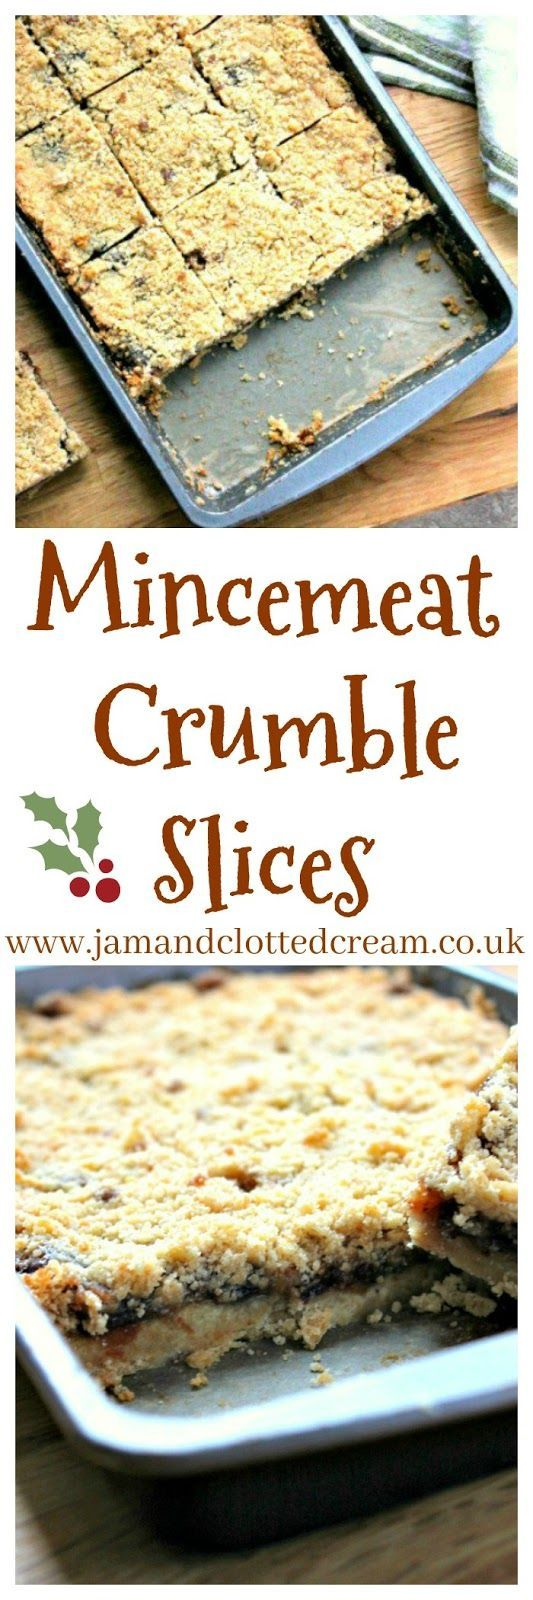 MINCEMEAT CRUMBLE SLICES - THE PERFECT ALTERNATIVE TO TRADITIONAL MINCE PIES